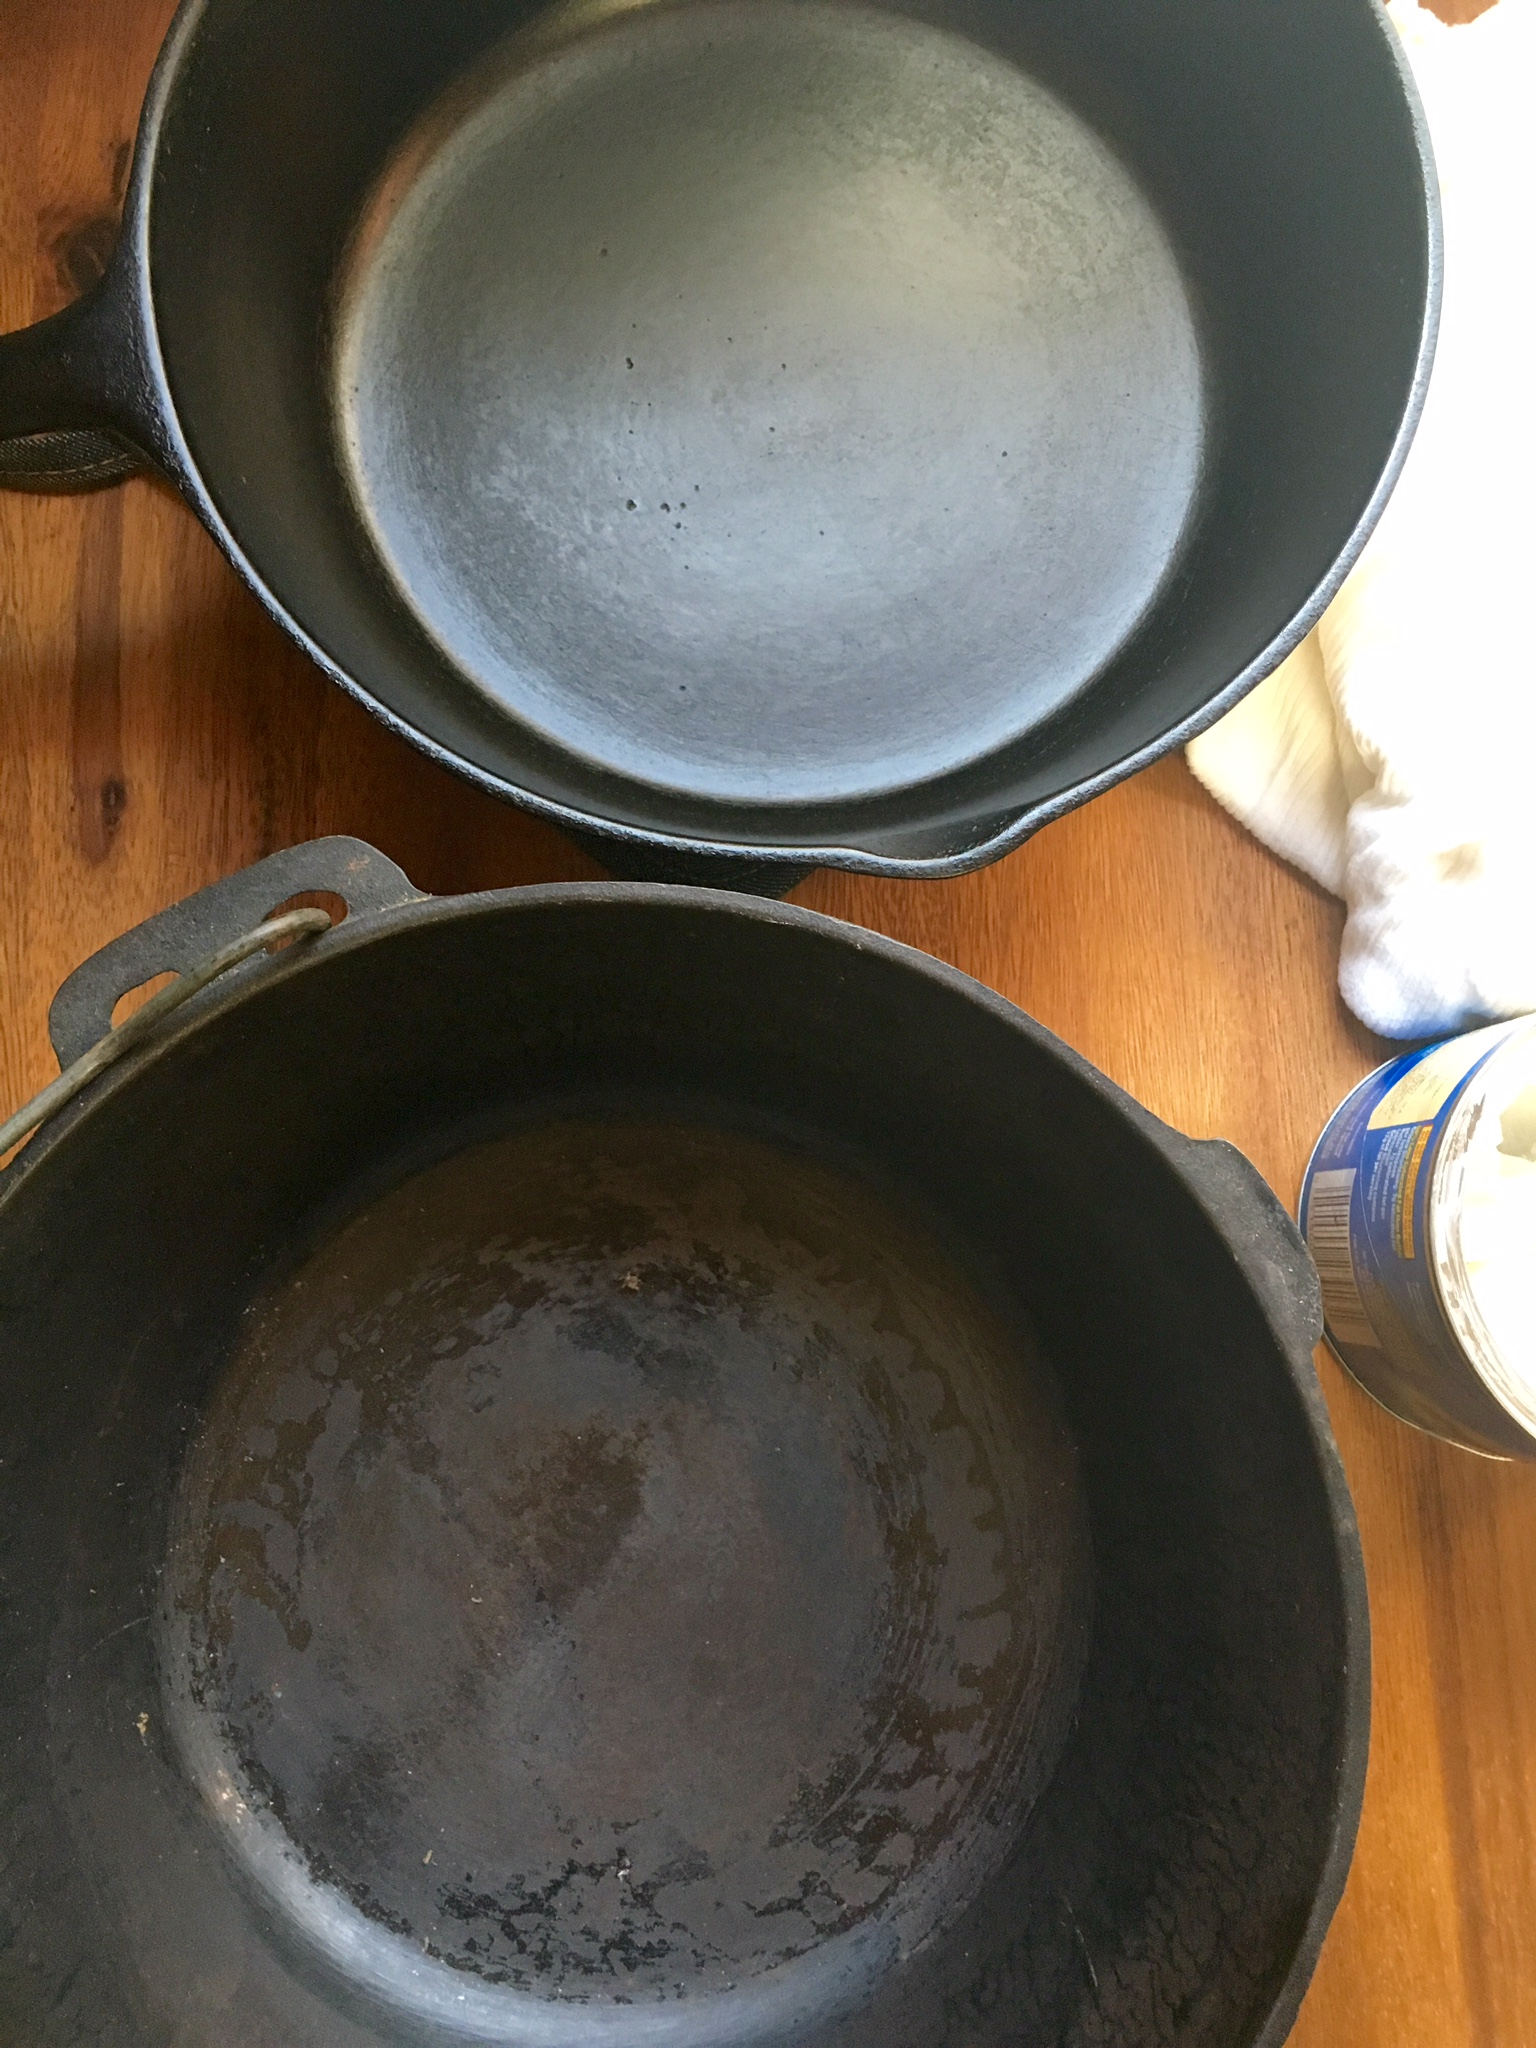 How to properly clean a cast iron skillet